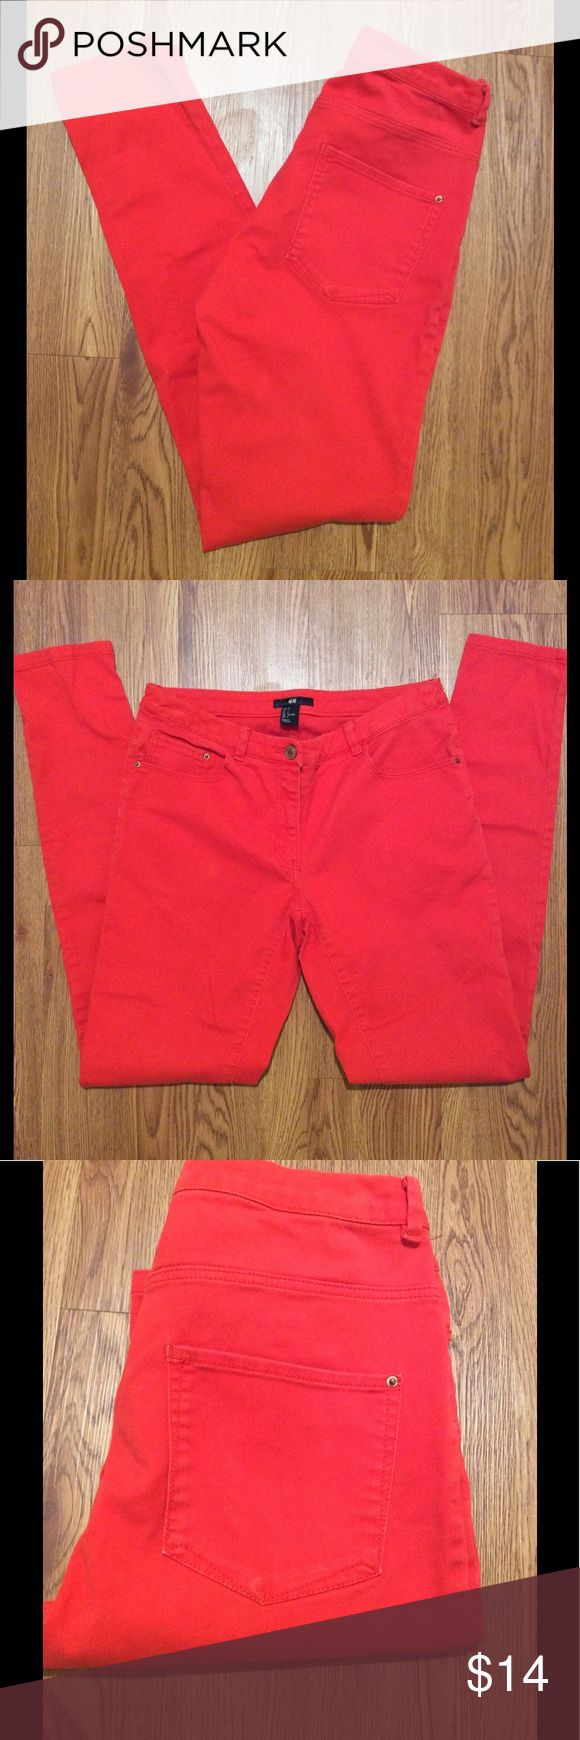 Tomato Red H&M Skinny Jeans H&M, size 6, good stretch, used but in good condition, yellow jeans in closet too H&M Jeans Skinny